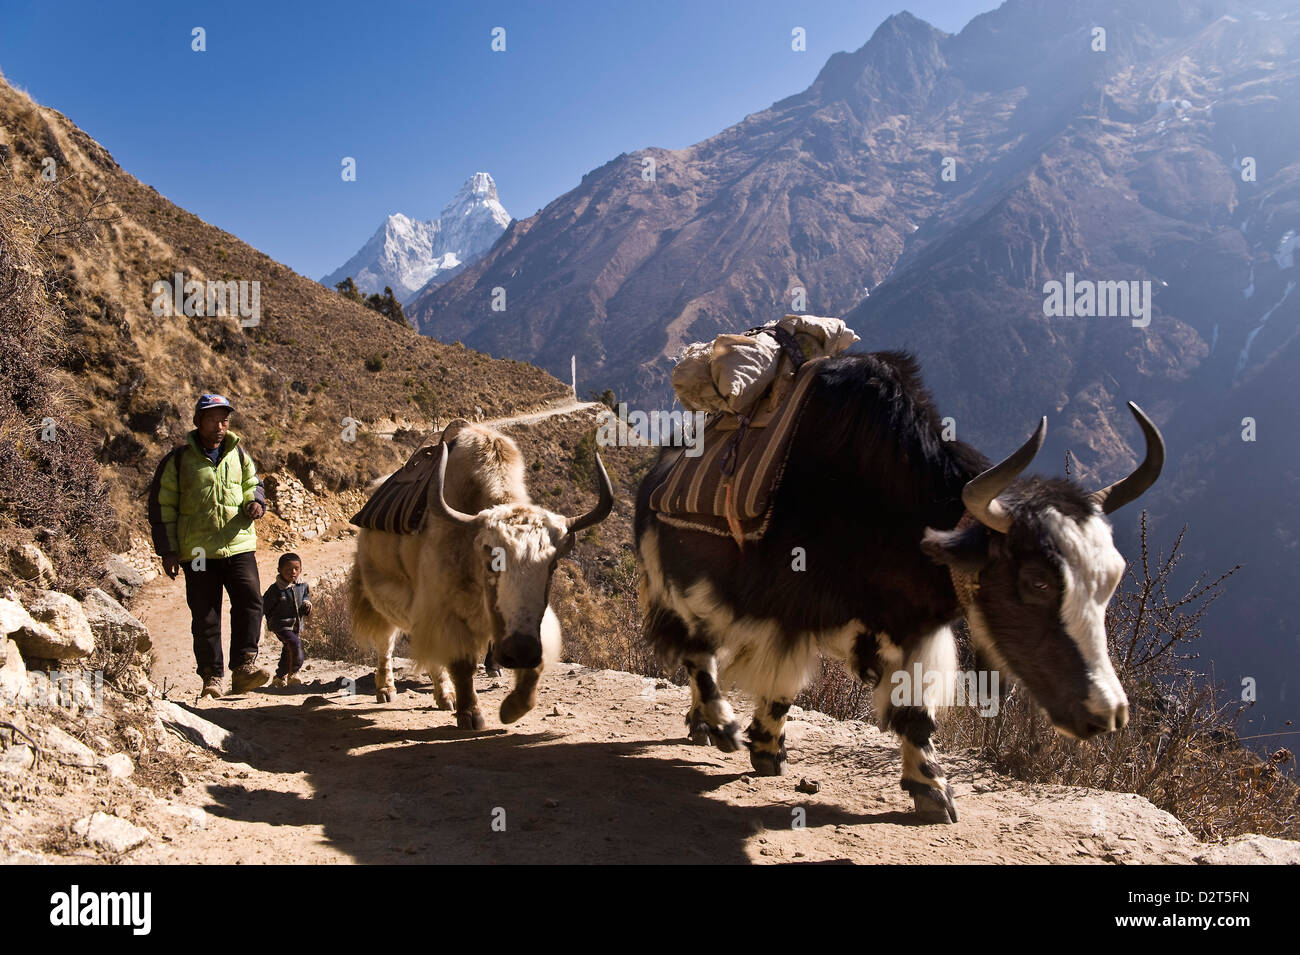 Yaks on trail, Khumbu (Everest) Region, Nepal, Himalayas, Asia - Stock Image